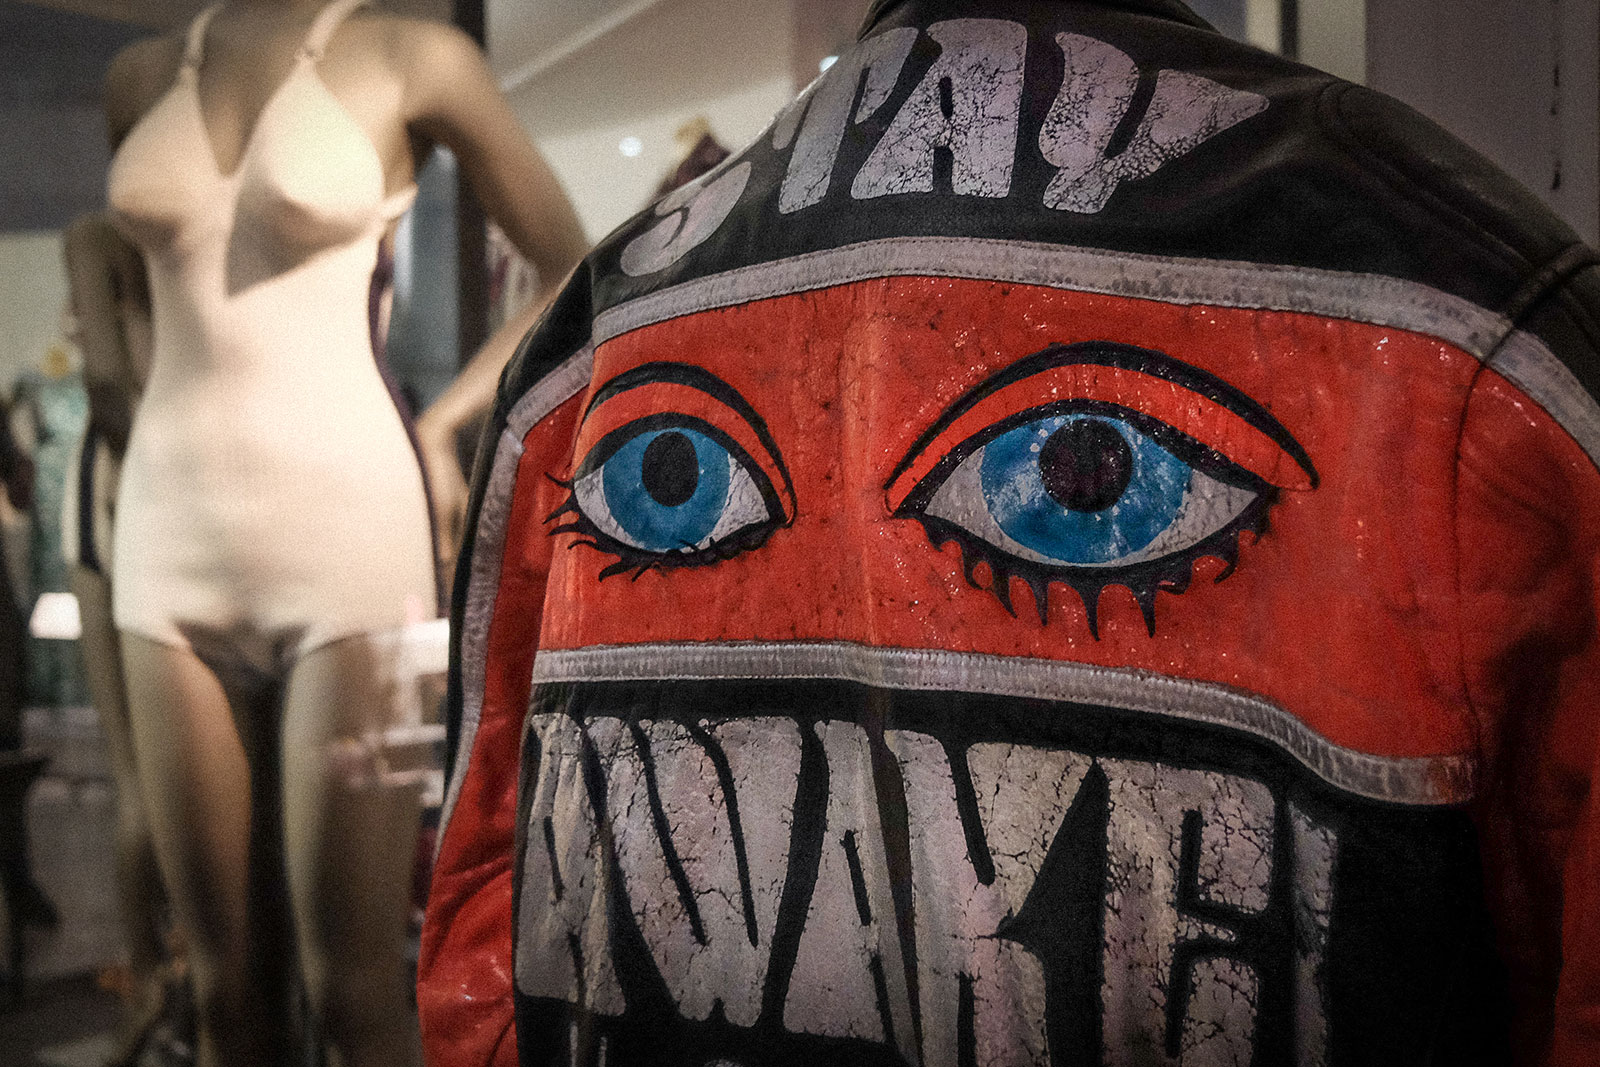 Stay Awake! BodyPolitic protest clothing